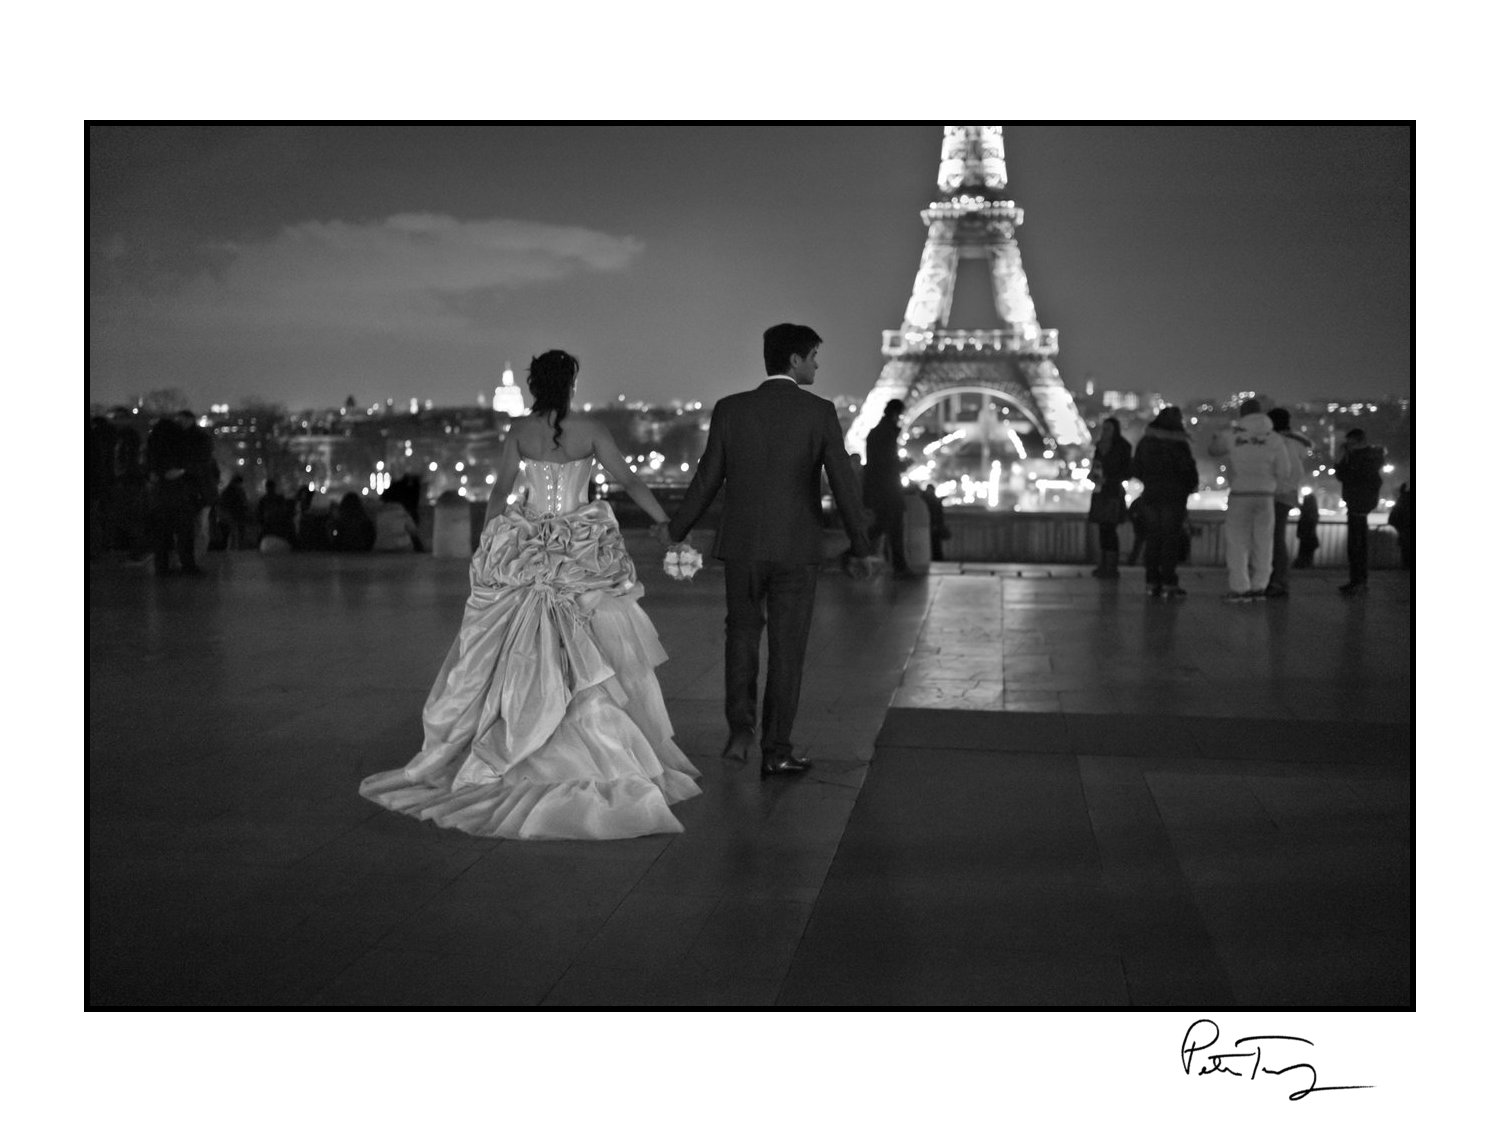 "ID #81・Paris, 2013<span class=""print-link""><span class=""separator"">・</span><a onclick='document.getElementsByClassName(""sqs-lightbox-close"")[0].click();'>Thumbnails</a></span>"